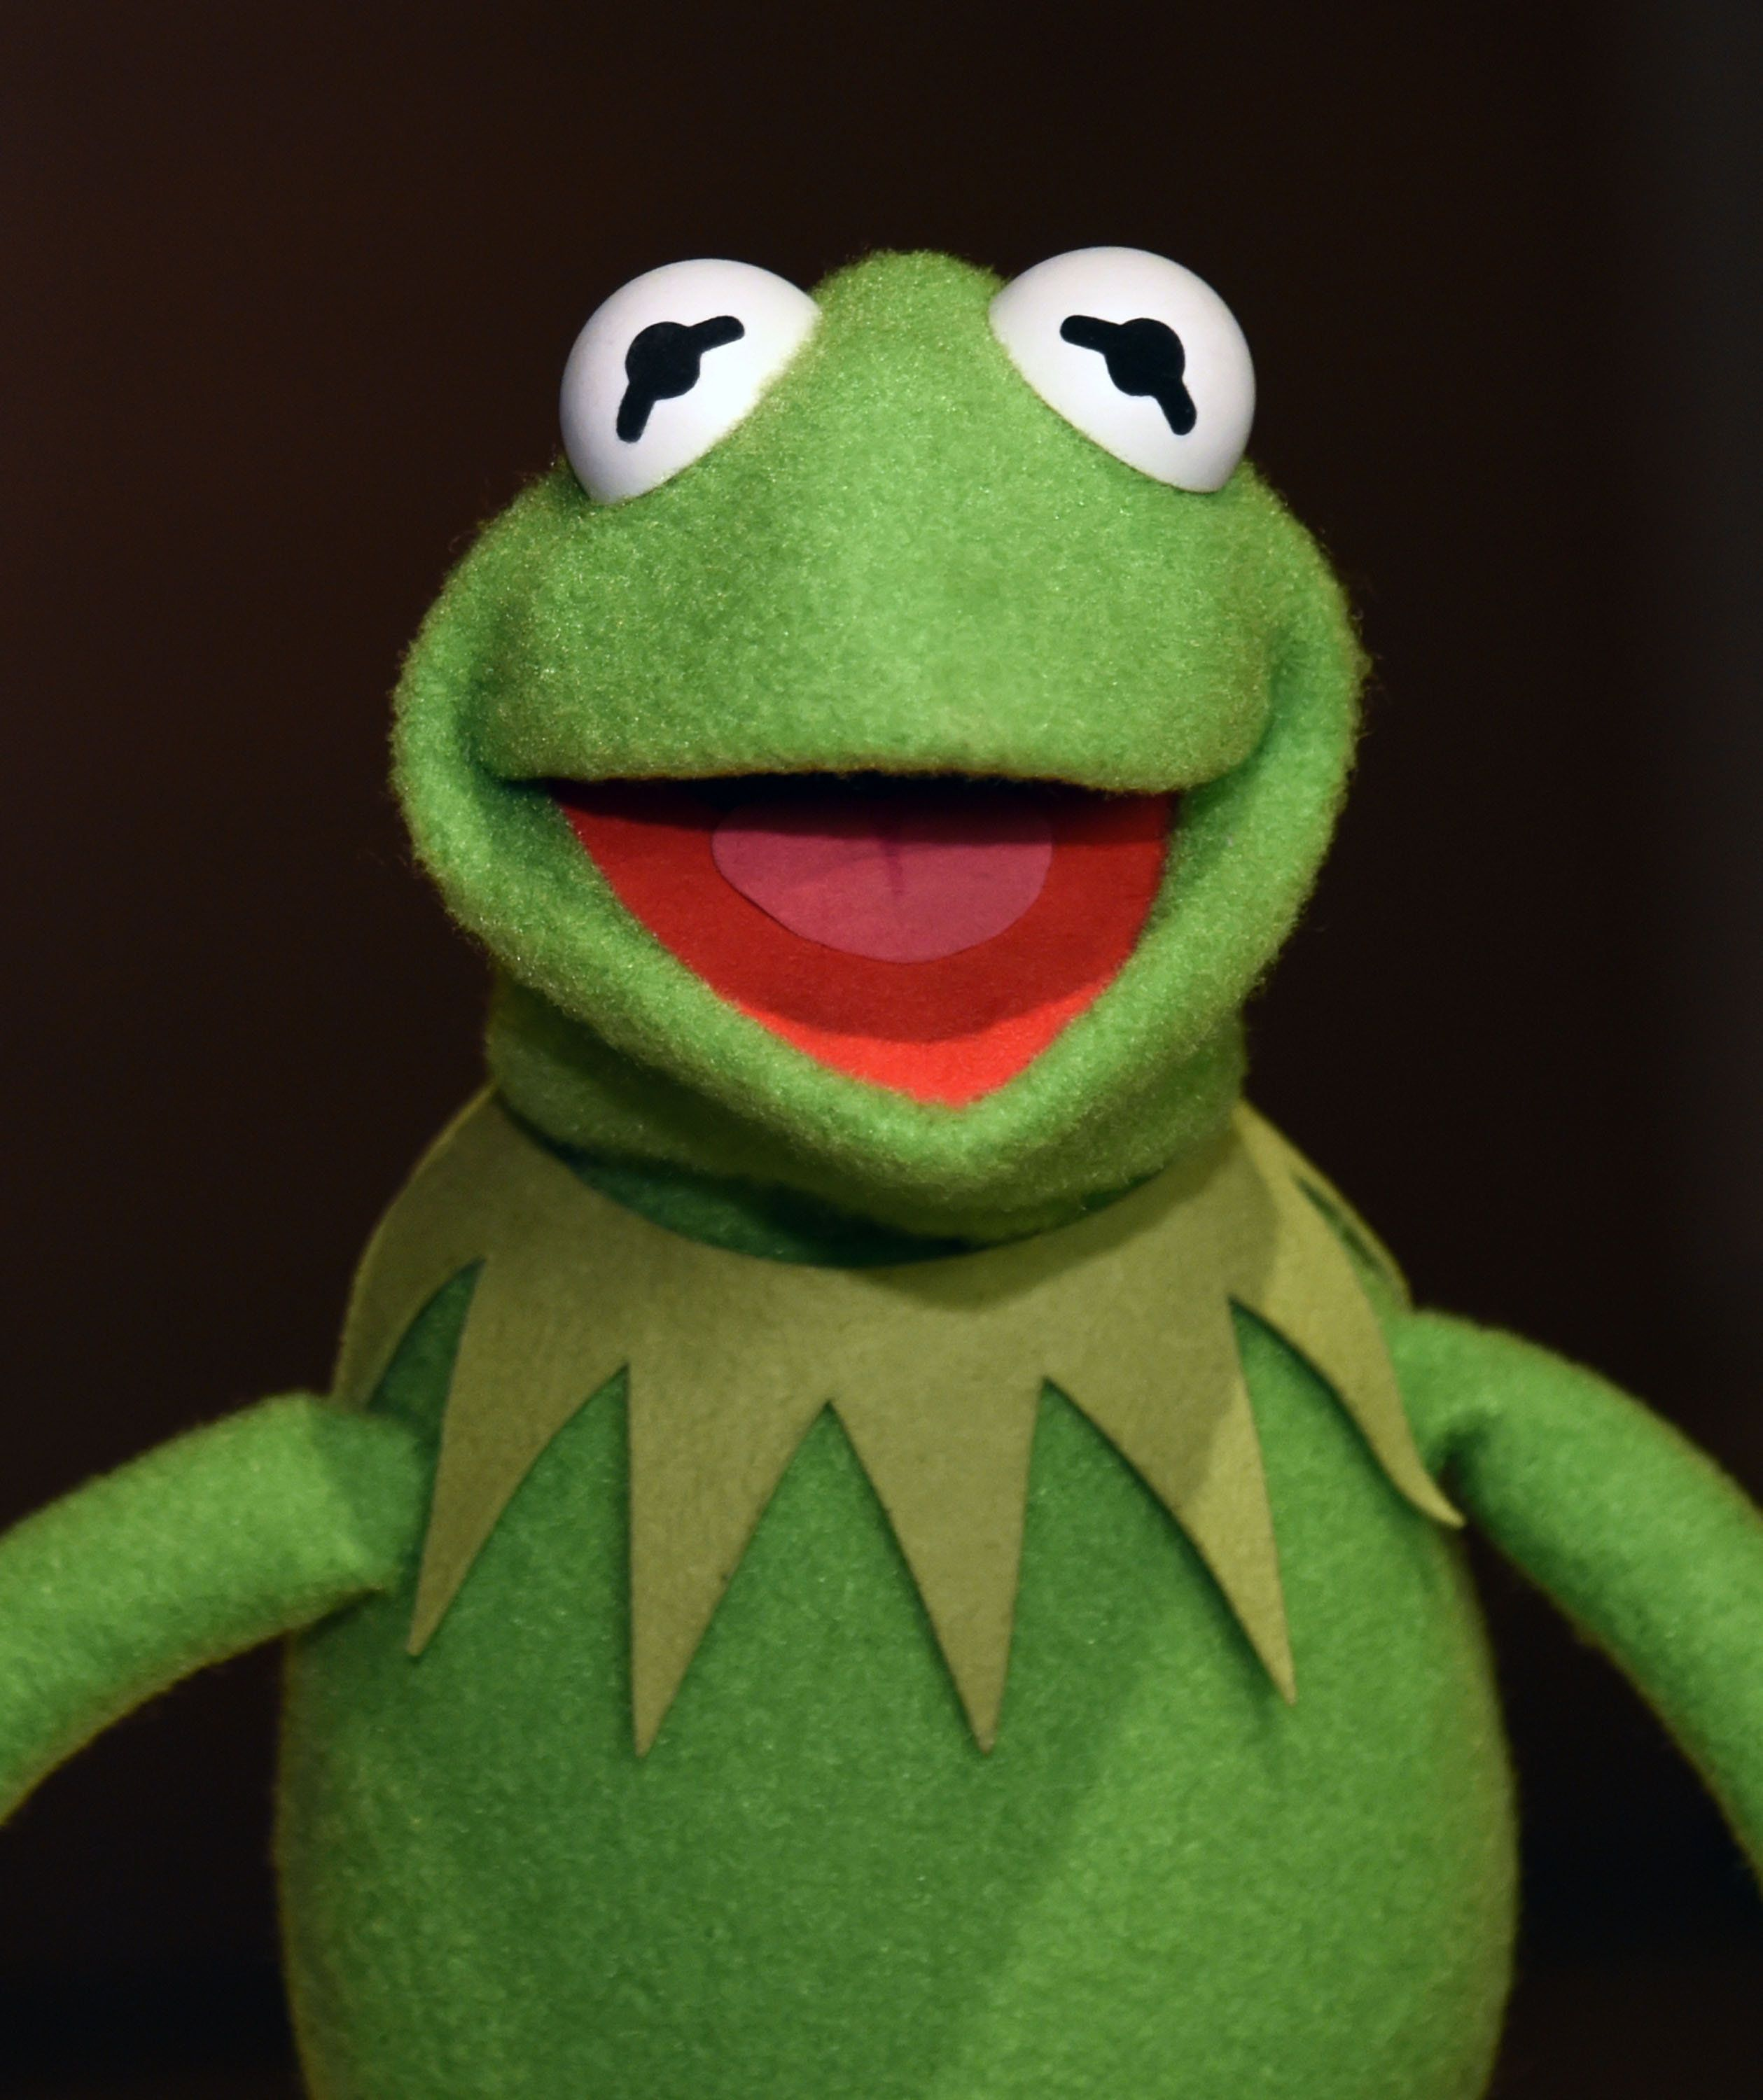 NEW YORK, NY - JUNE 04:  Kermit the Frog poses during Brooklyn Museum's Sackler Center First Awards at Brooklyn Museum on June 4, 2015 in New York City.  (Photo by Ilya S. Savenok/Getty Images)